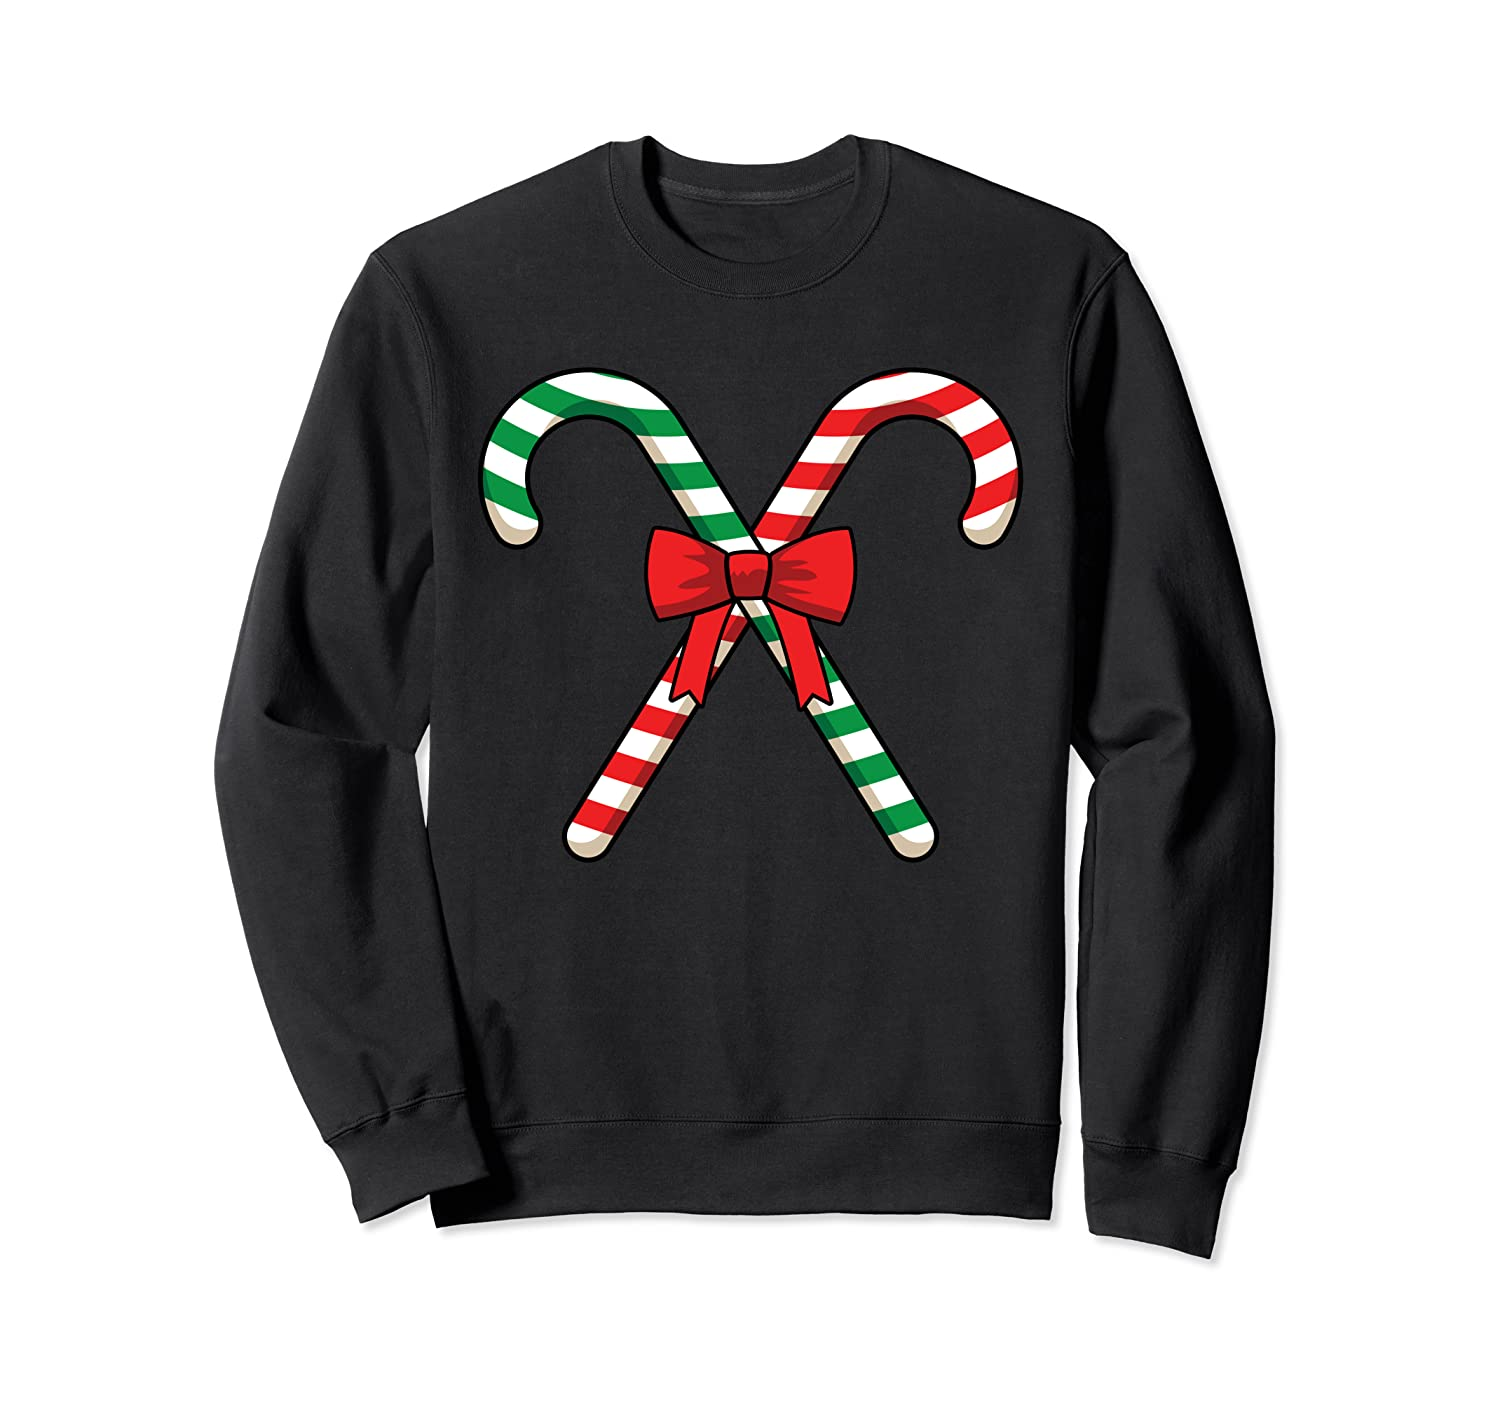 Big Giant Two Candy Canes Merry Christmas Funny Family Party Sweatshirt